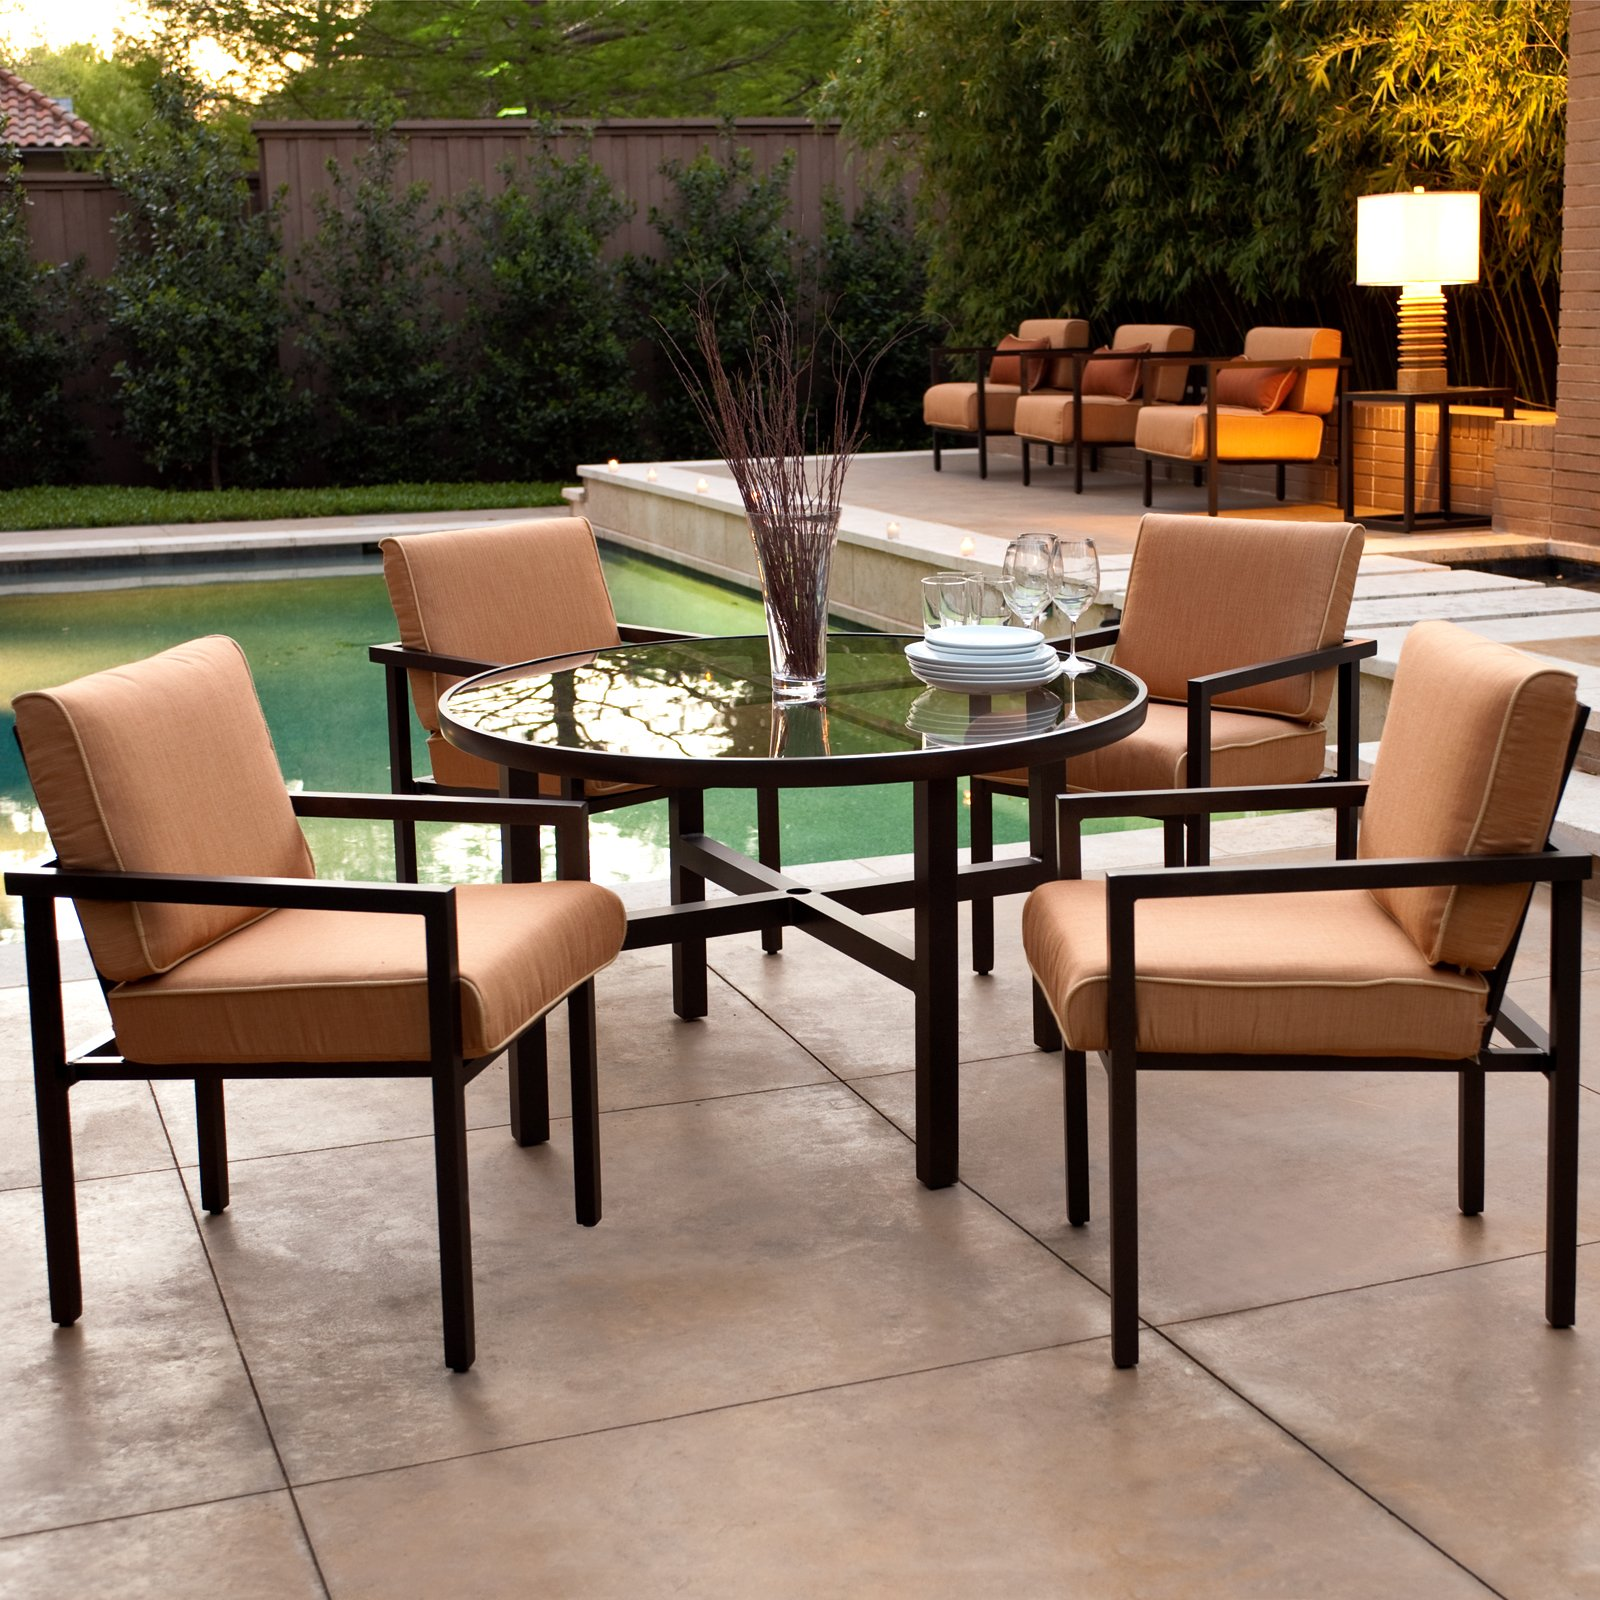 Places To Go For Affordable Modern Outdoor Furniture ... on Modern Backyard Patio id=44467